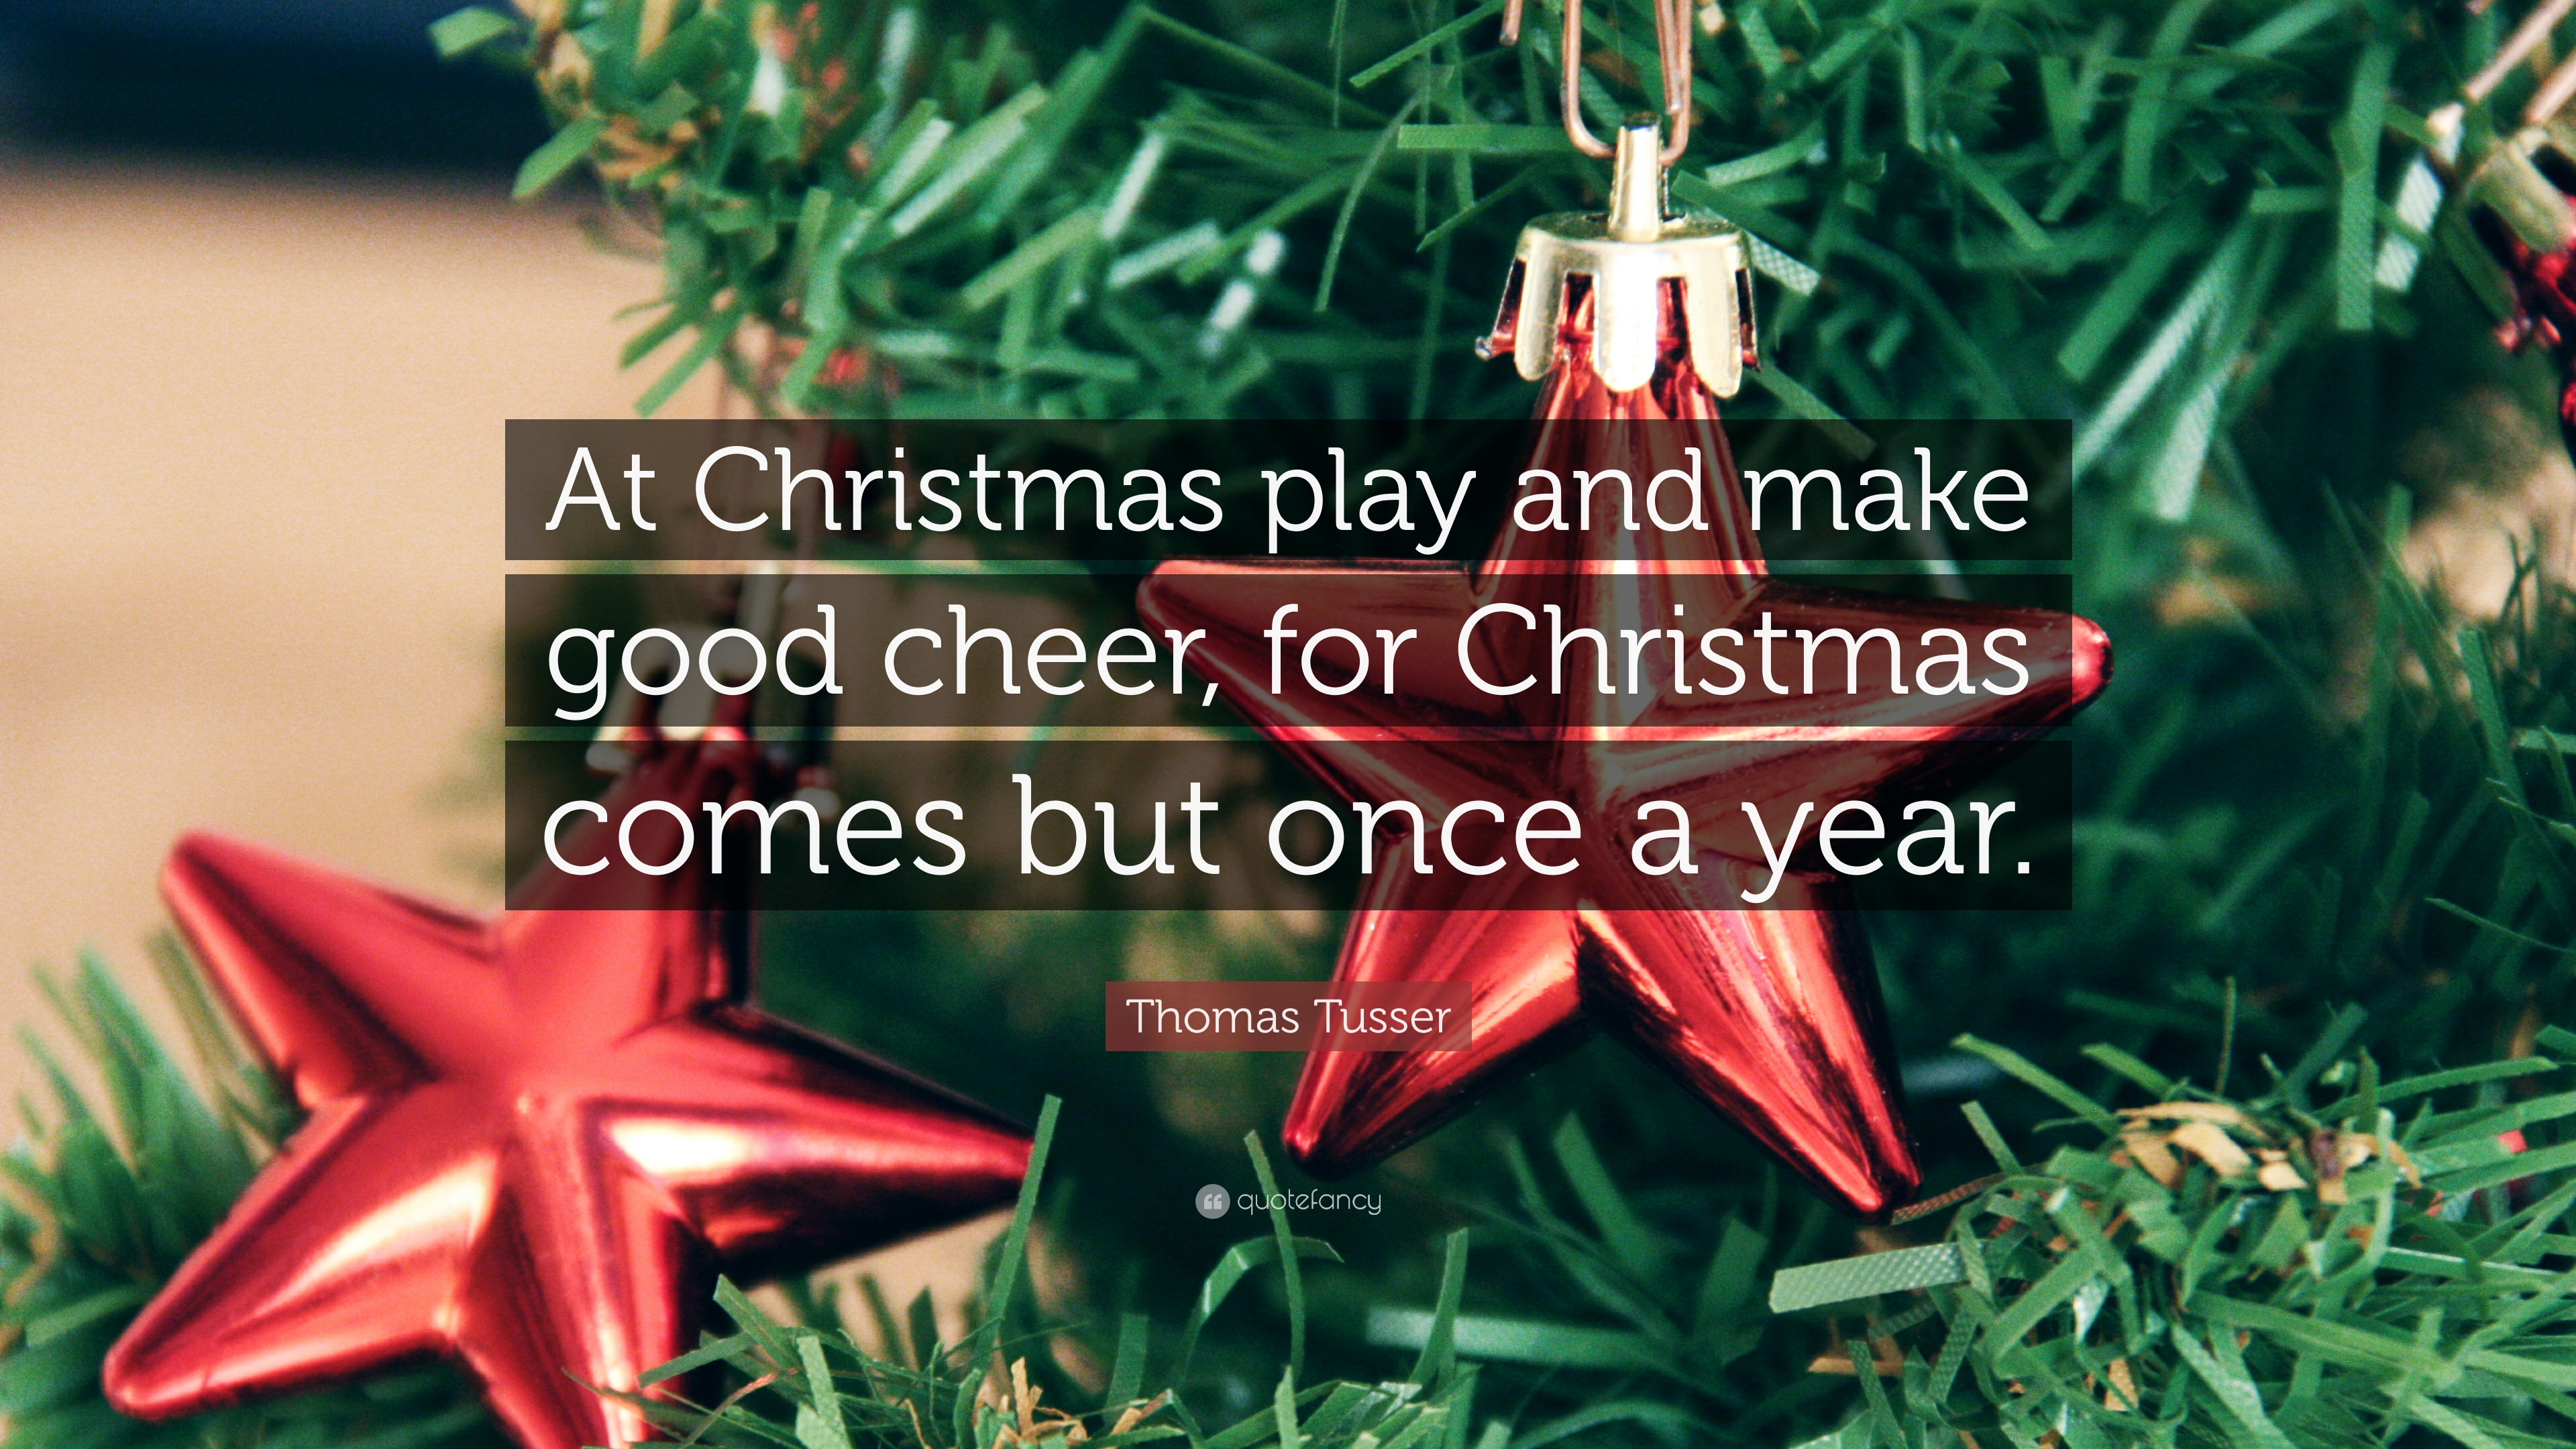 Christmas Comes But Once A Year.Thomas Tusser Quote At Christmas Play And Make Good Cheer